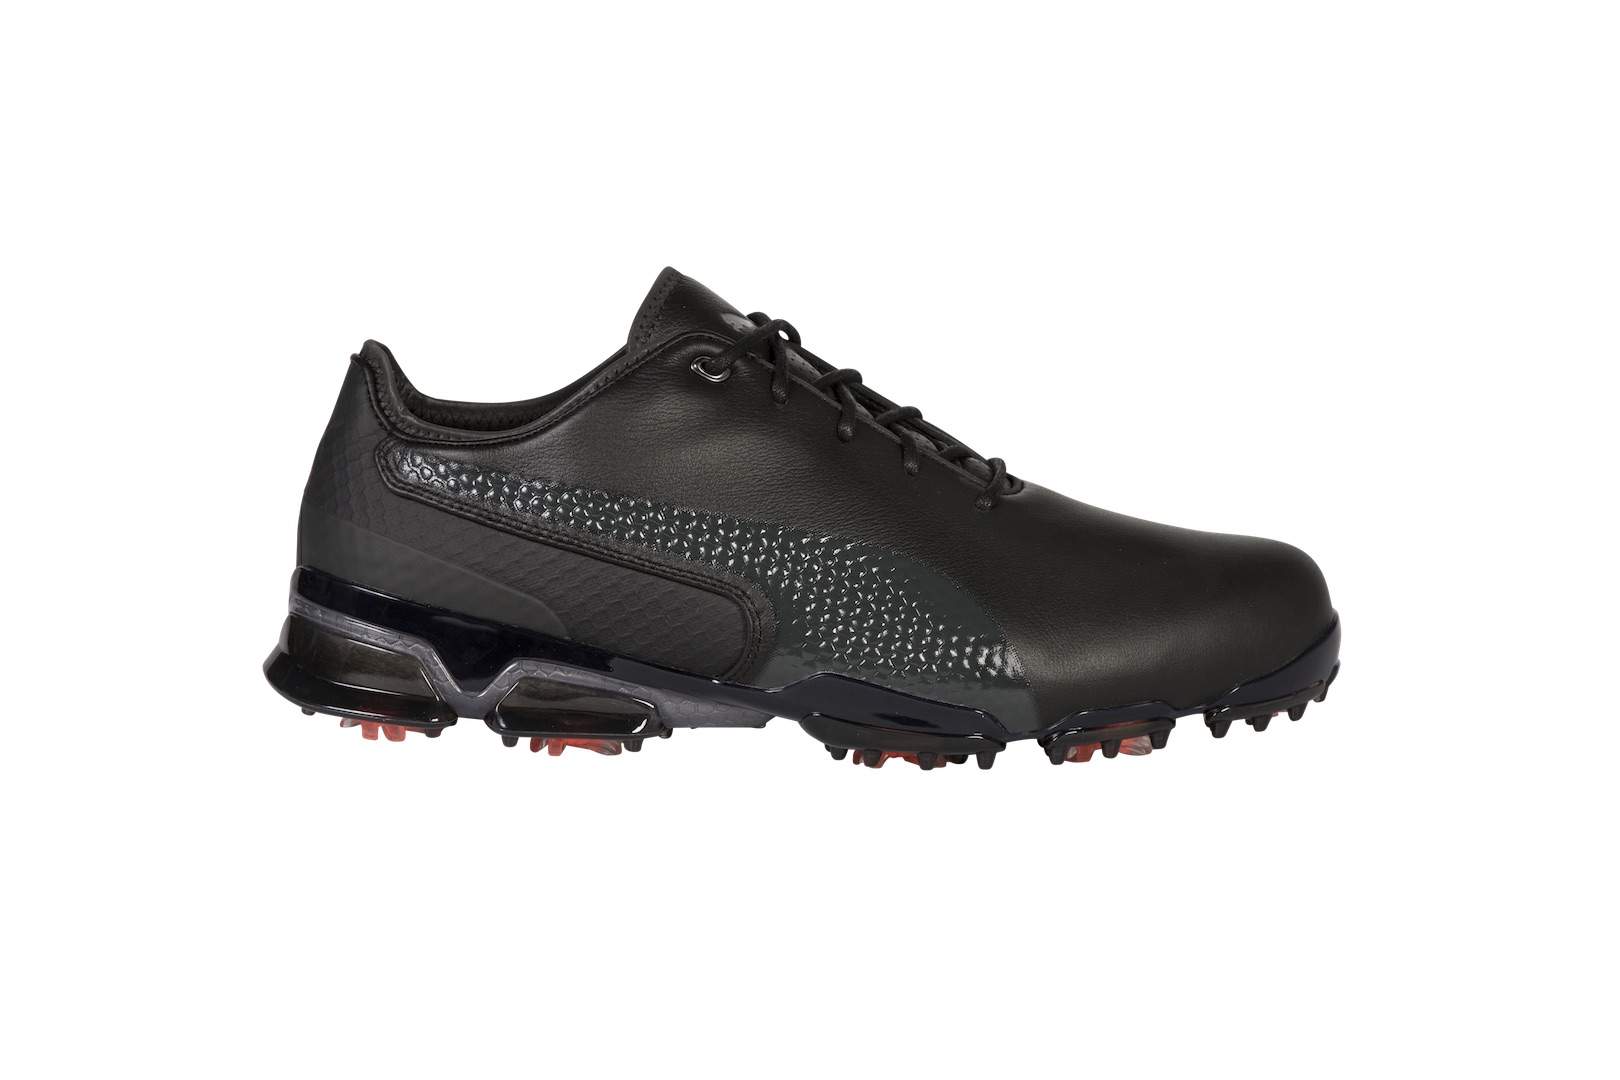 Puma Golf unveils Ignite Proadapt footwear